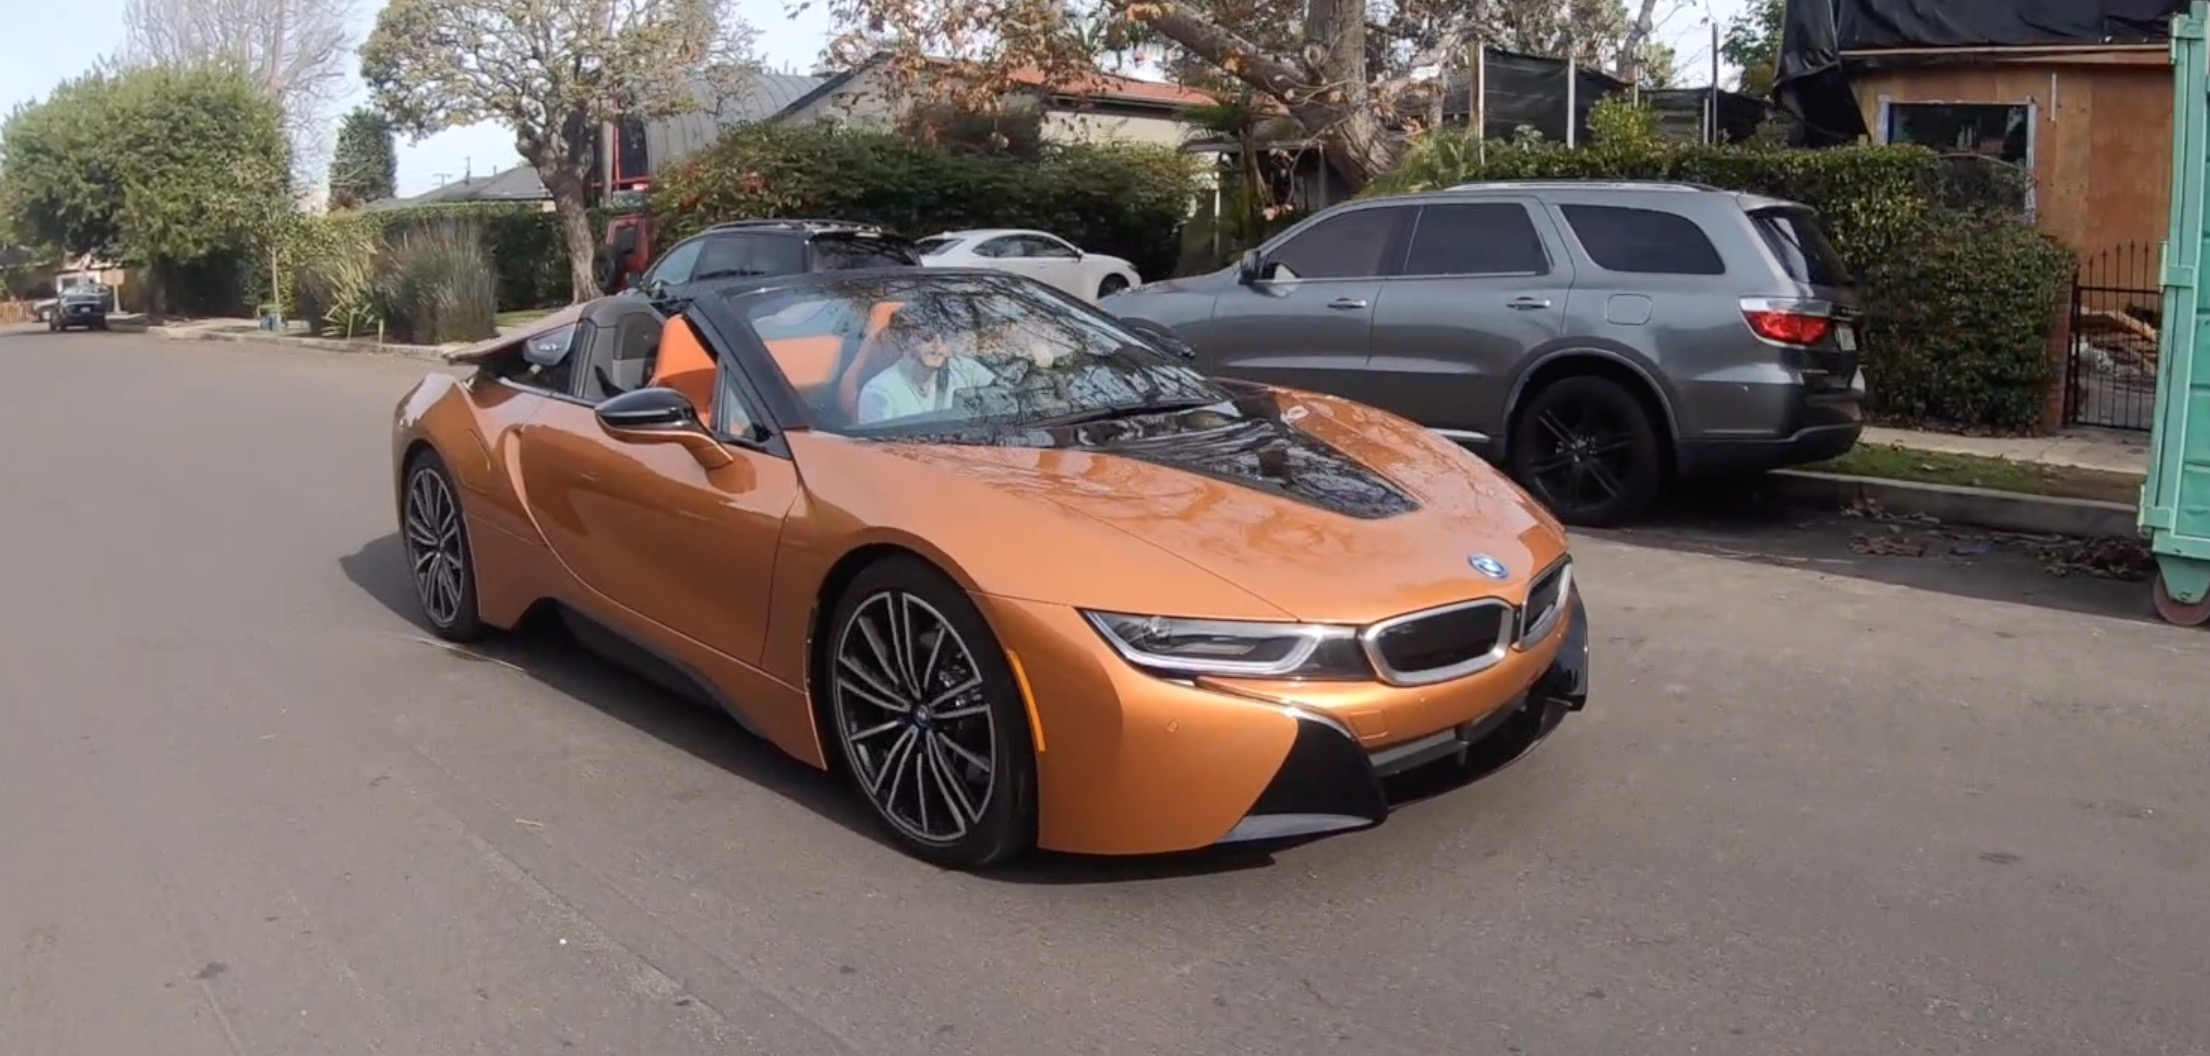 BMW said to favor all-electric for next-gen i8 sports car